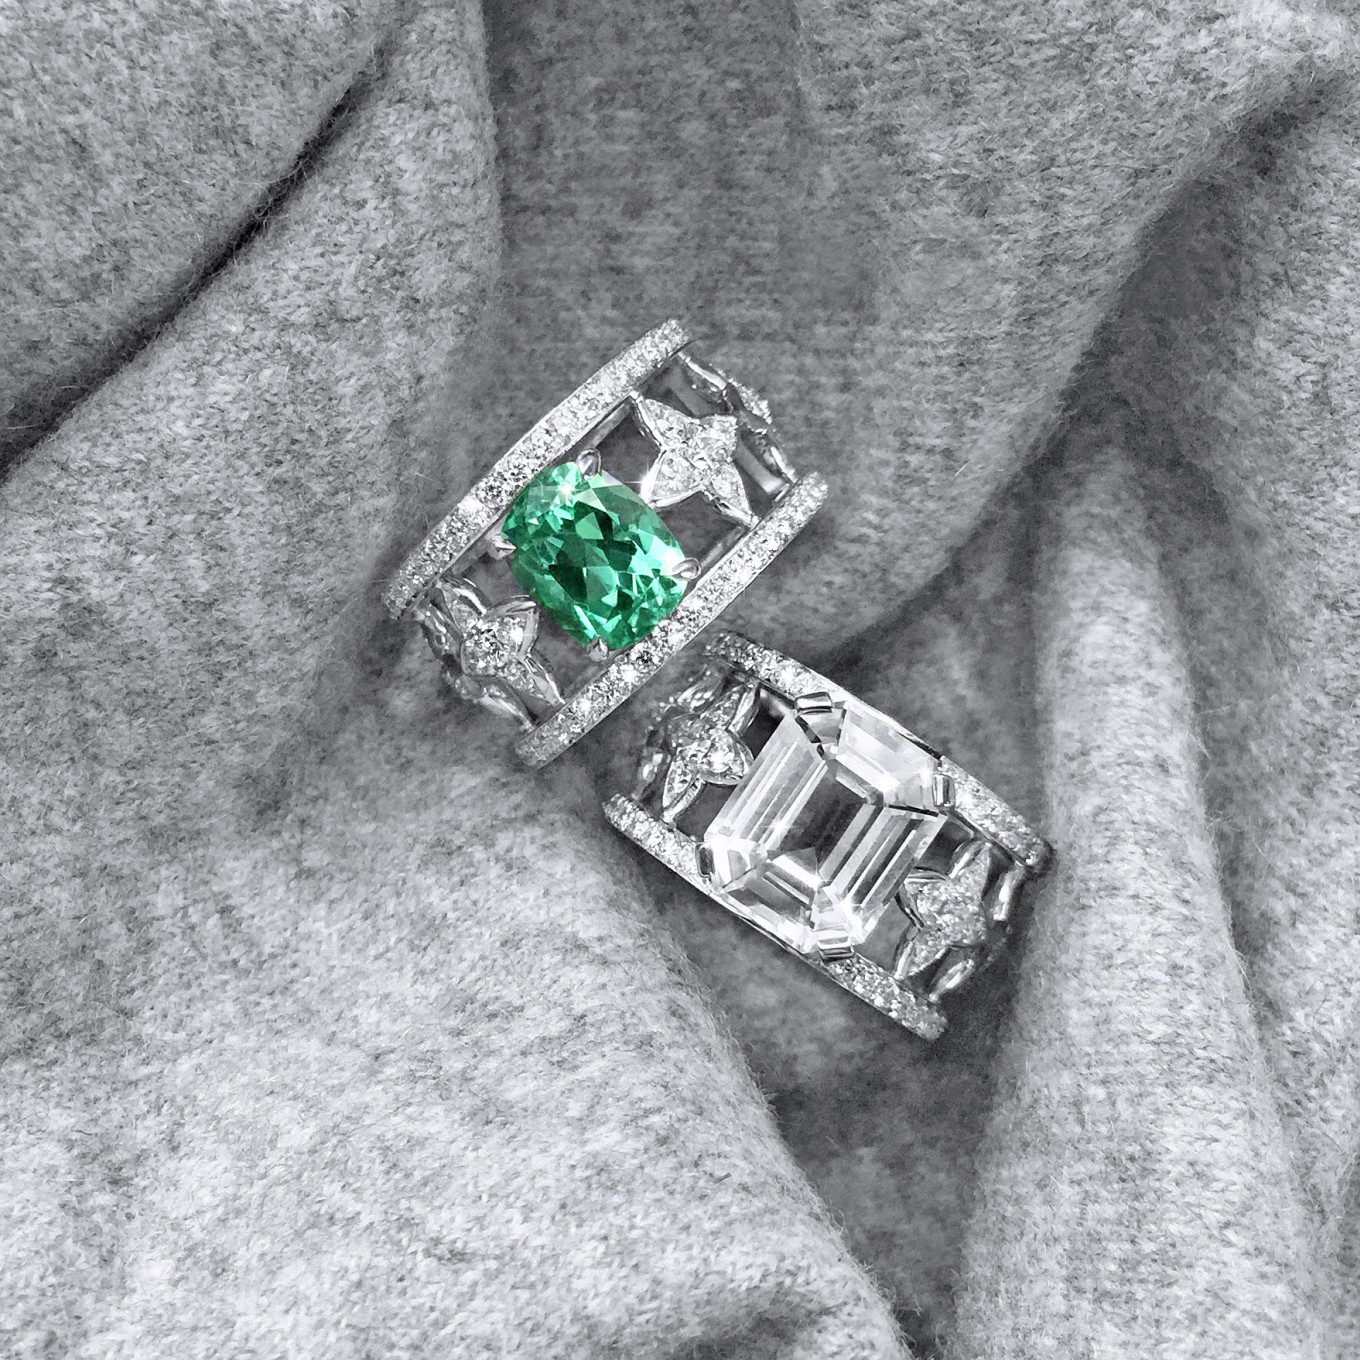 CUSHION CUT GREEN TOURMALINE & EMERALD CUT WHITE  SAPPHIRE & DIAMOND RINGS IN WHITE GOLD GREEN TOURMALINE 2.50 CTS DIA'S  0.97 CTS 12900 WHITE SAPPHIRE 5.15 CTS DIA'S  0.87 CTS  13500